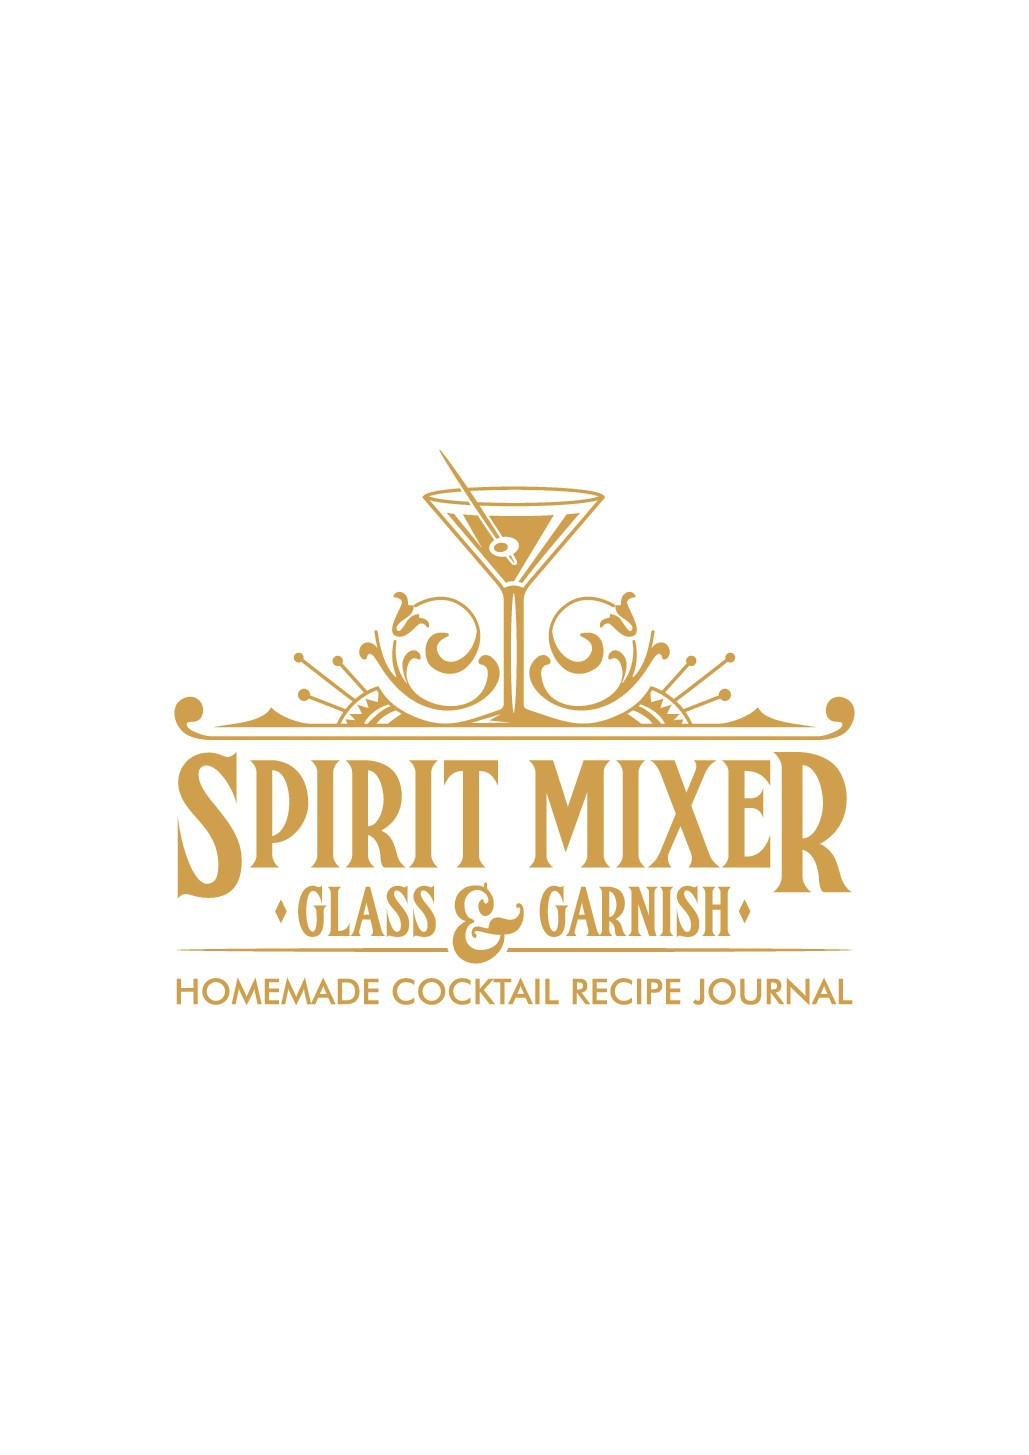 Grab a Drink and Design a Cocktail Recipe Journal